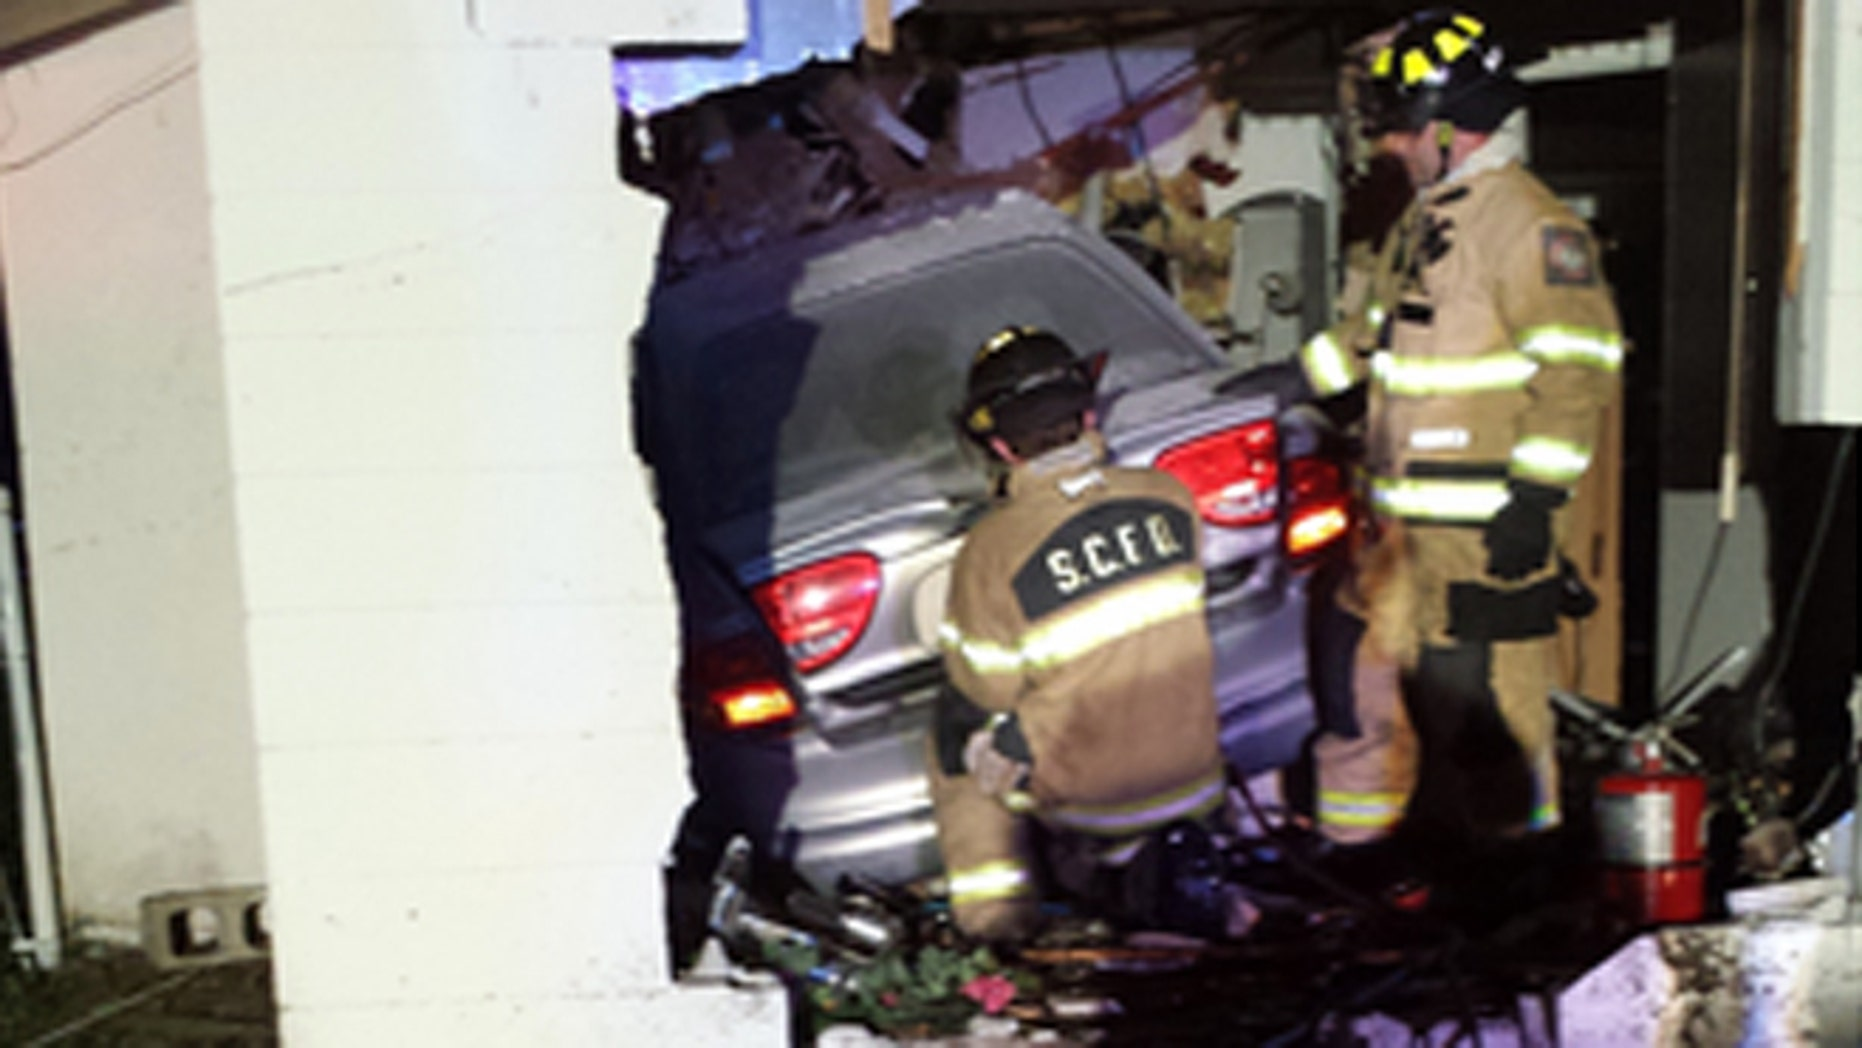 April 19: Rescue crews respond to a call about a car slamming through a house in Sarasota